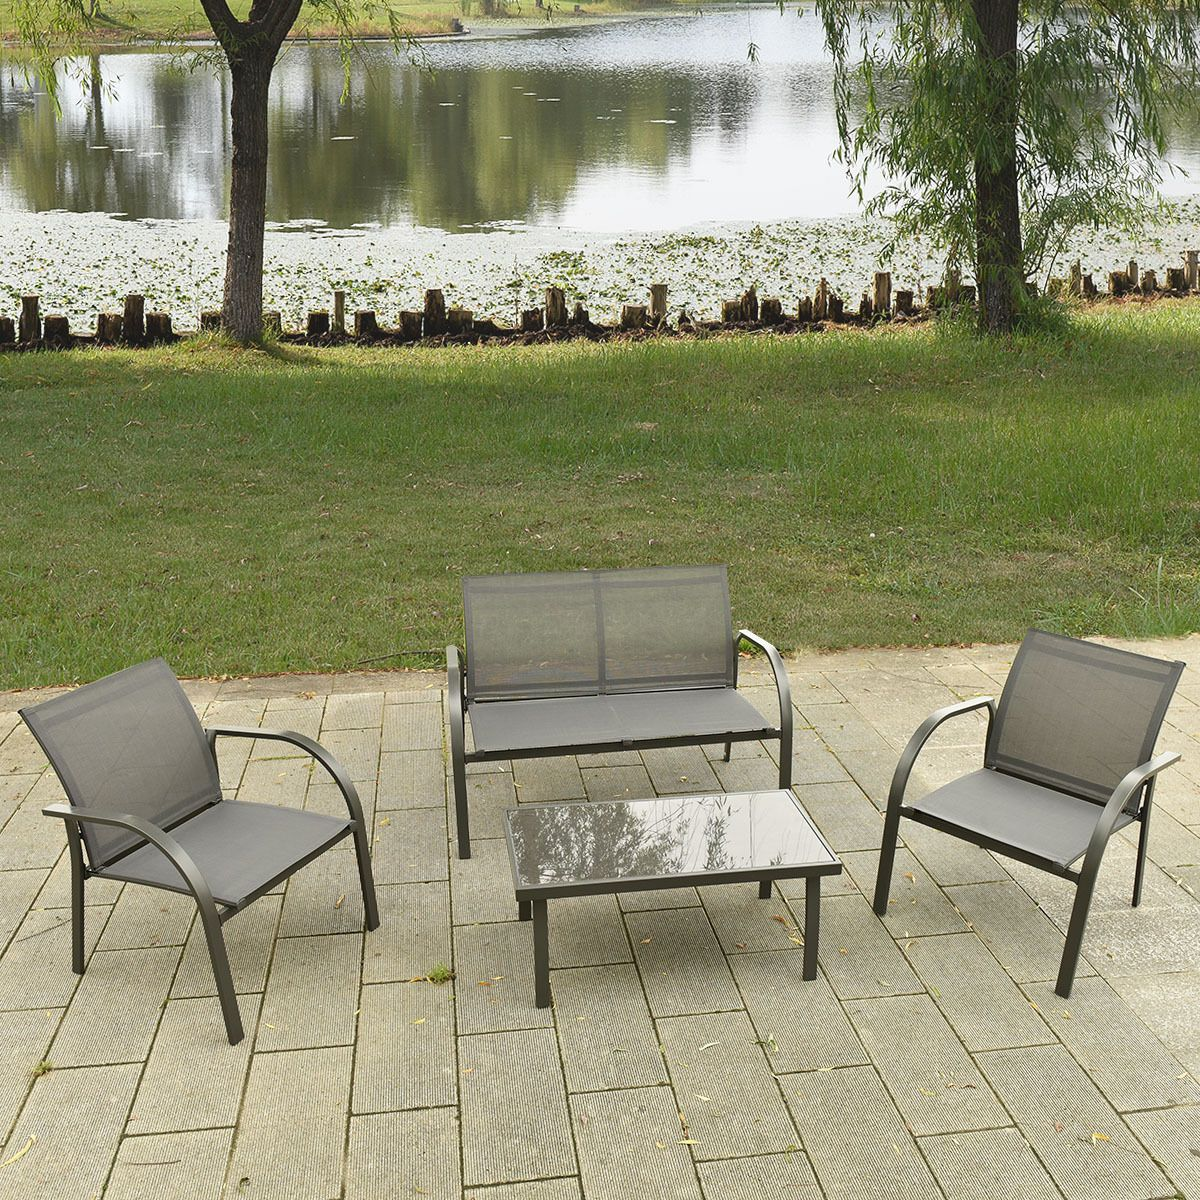 Garden Furniture Sets 4pcs patio garden furniture set steel frame outdoor lawn sofa